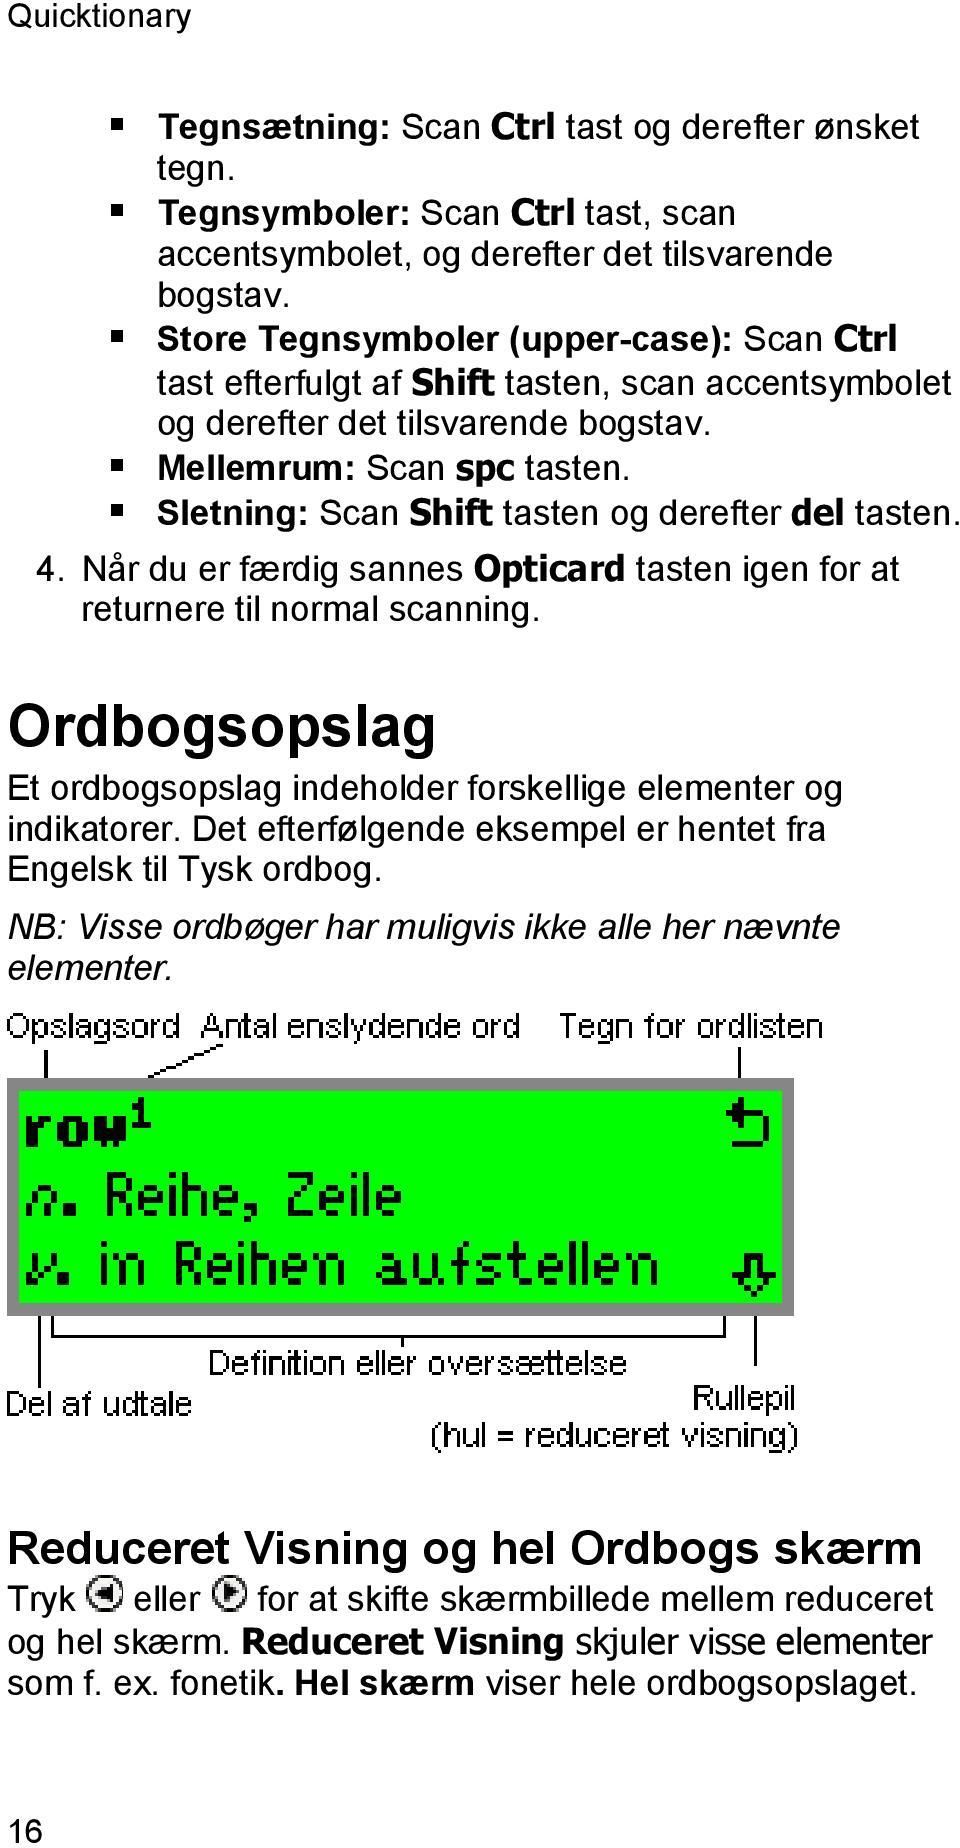 Sletning: Scan Shift tasten og derefter del tasten. 4. Når du er færdig sannes Opticard tasten igen for at returnere til normal scanning.